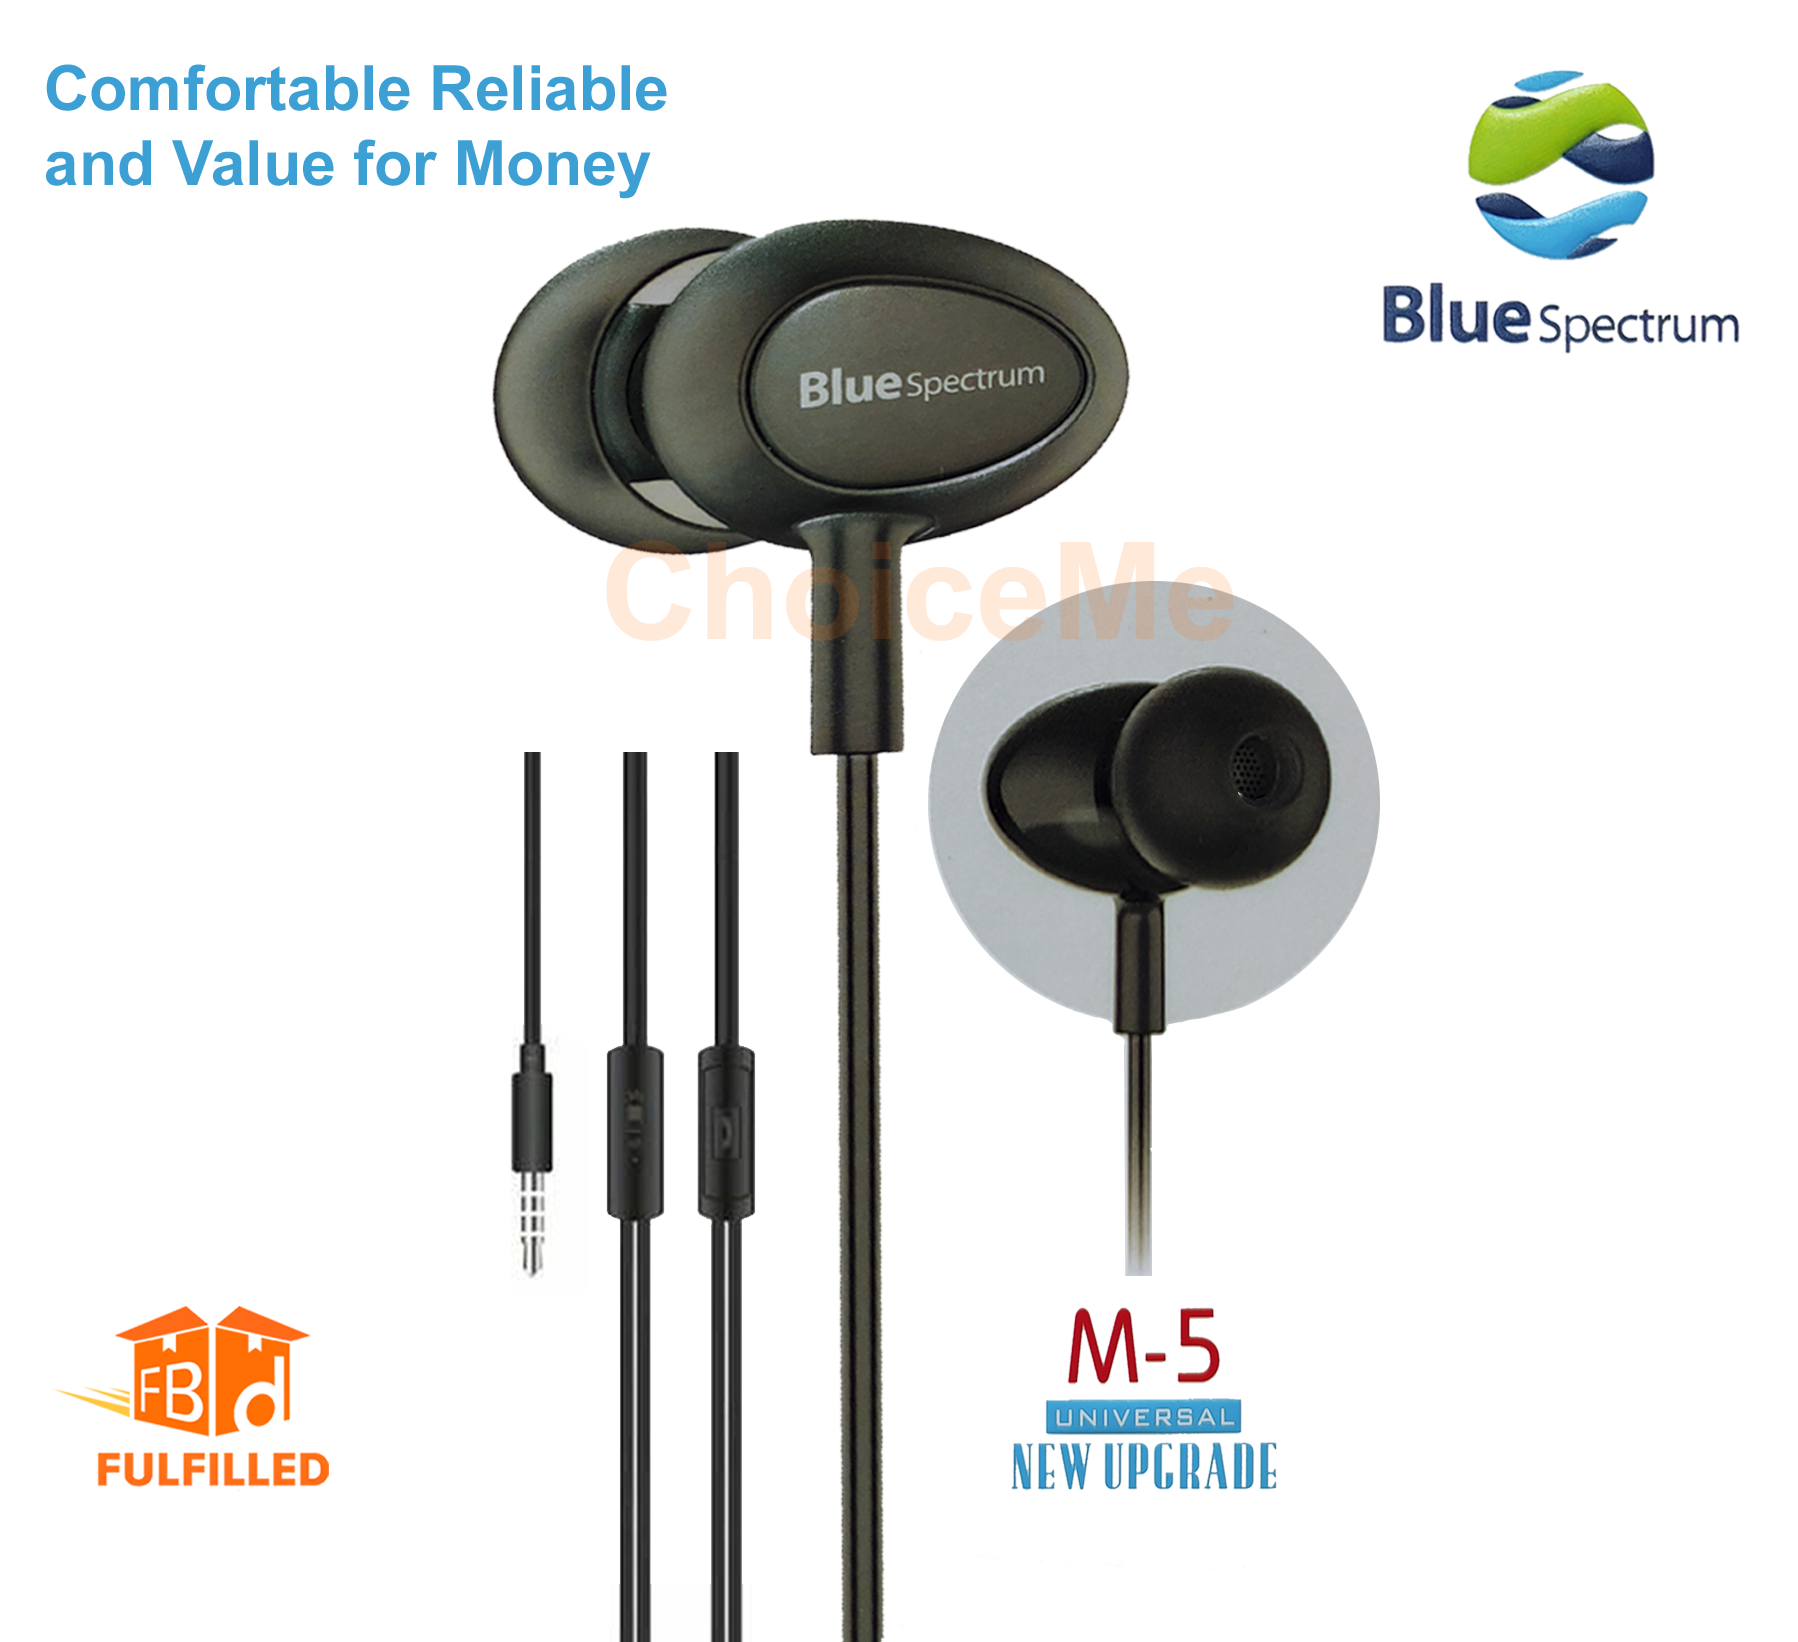 Original Handfree Blue Spectrum M5 Stereo Earphones High Base For All Android Mobile Phones Best for Work from Home / Gaming Handfree / Online Classes